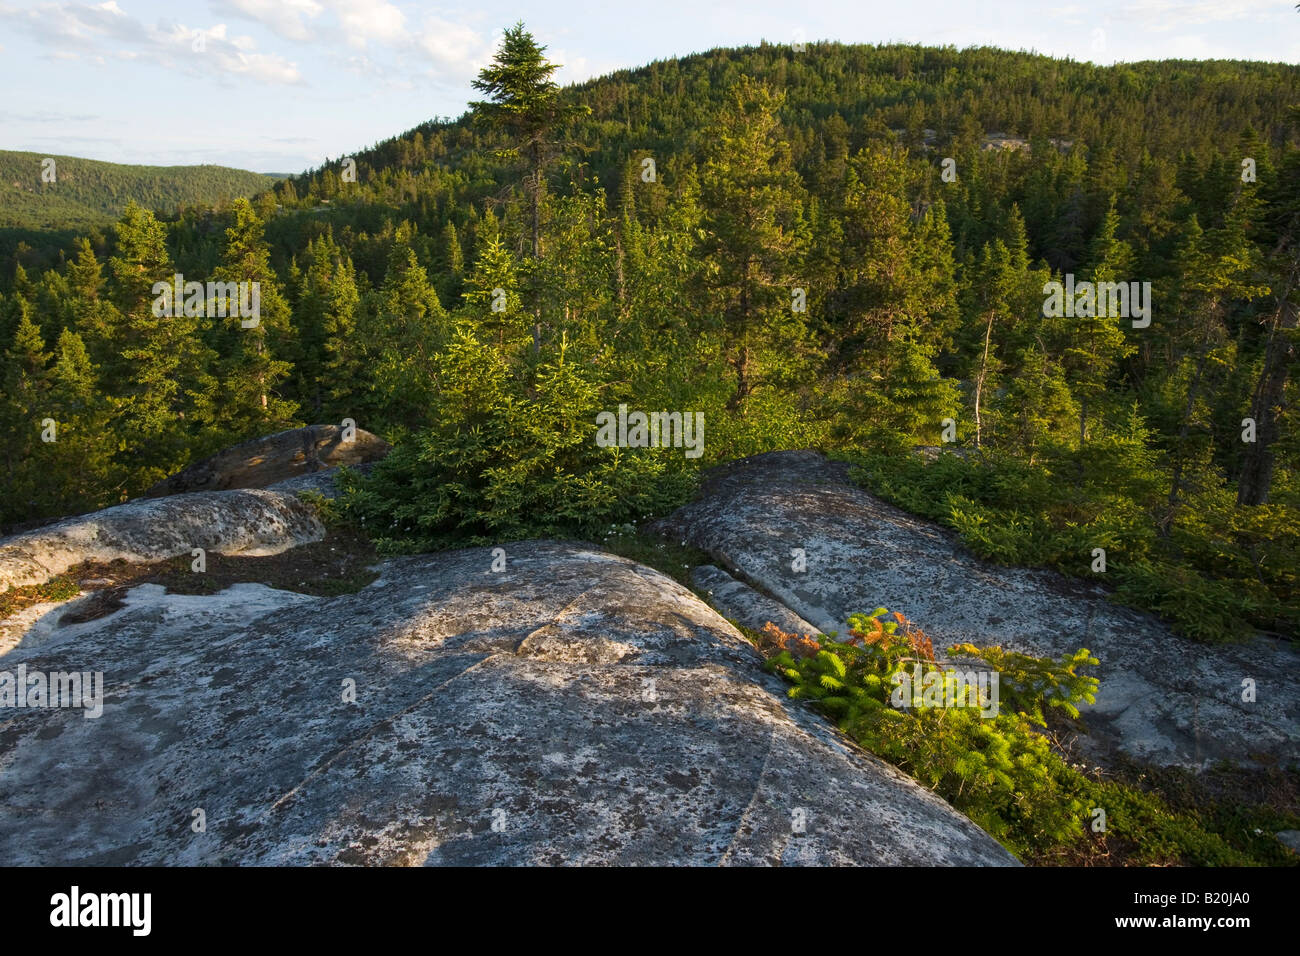 A view in Parc national du Saguenay in Tadoussac, Quebec. Saguenay National Park. Canada. - Stock Image